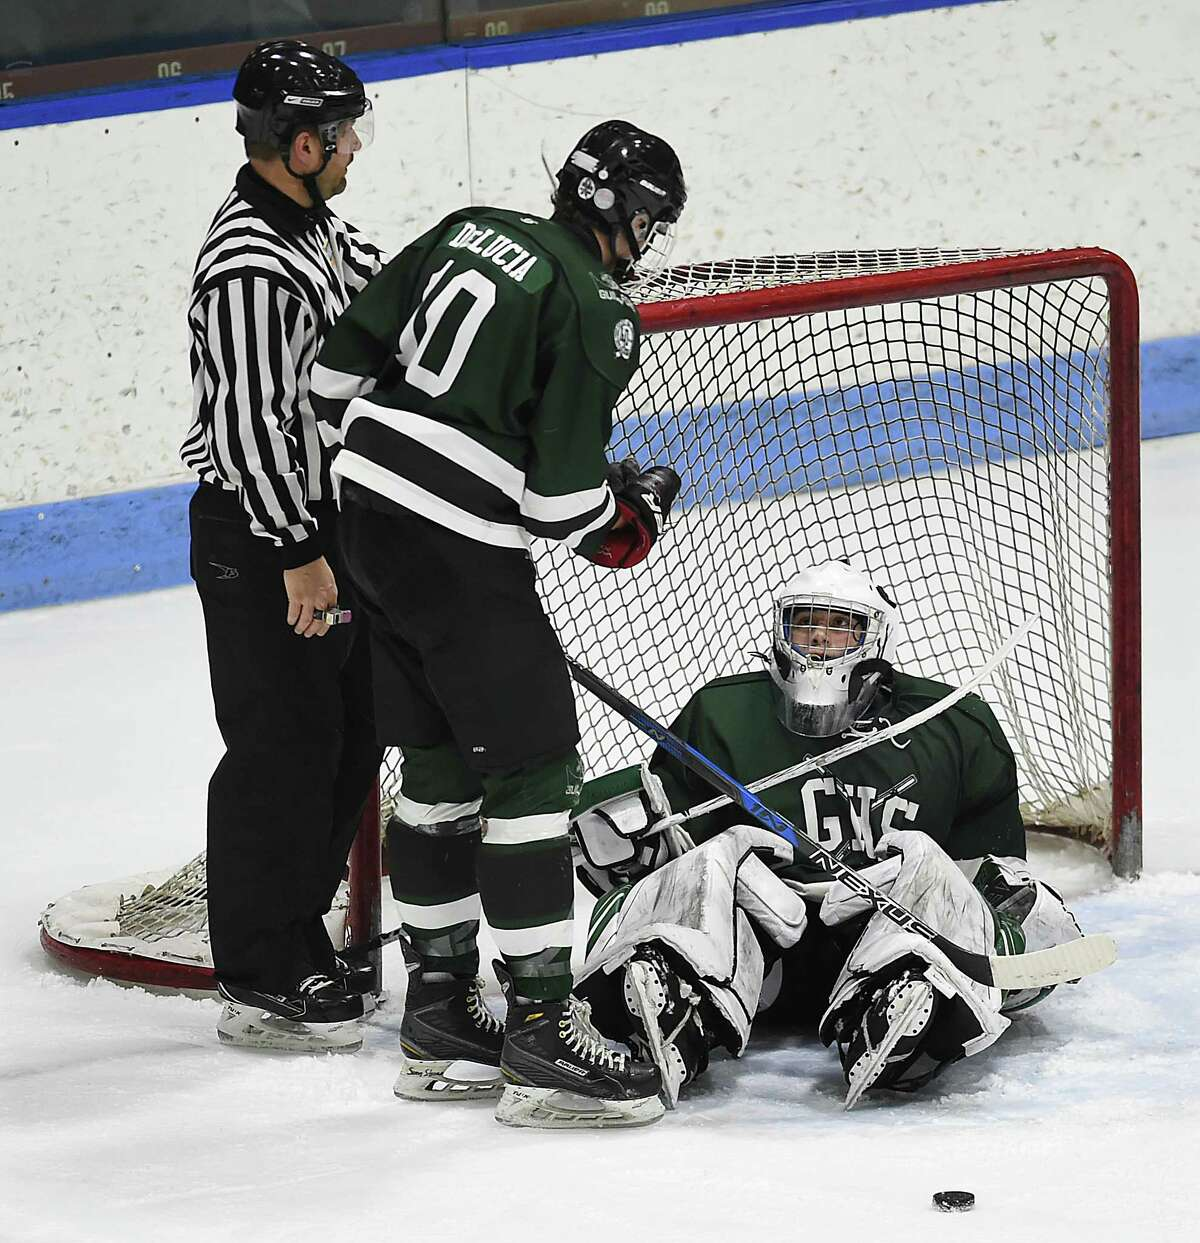 Farmington Valley leads, 7-1, over Guilford in the CIAC Division II state ice hockey championship, March 16, 2018, at Ingalls Rink in New Haven.